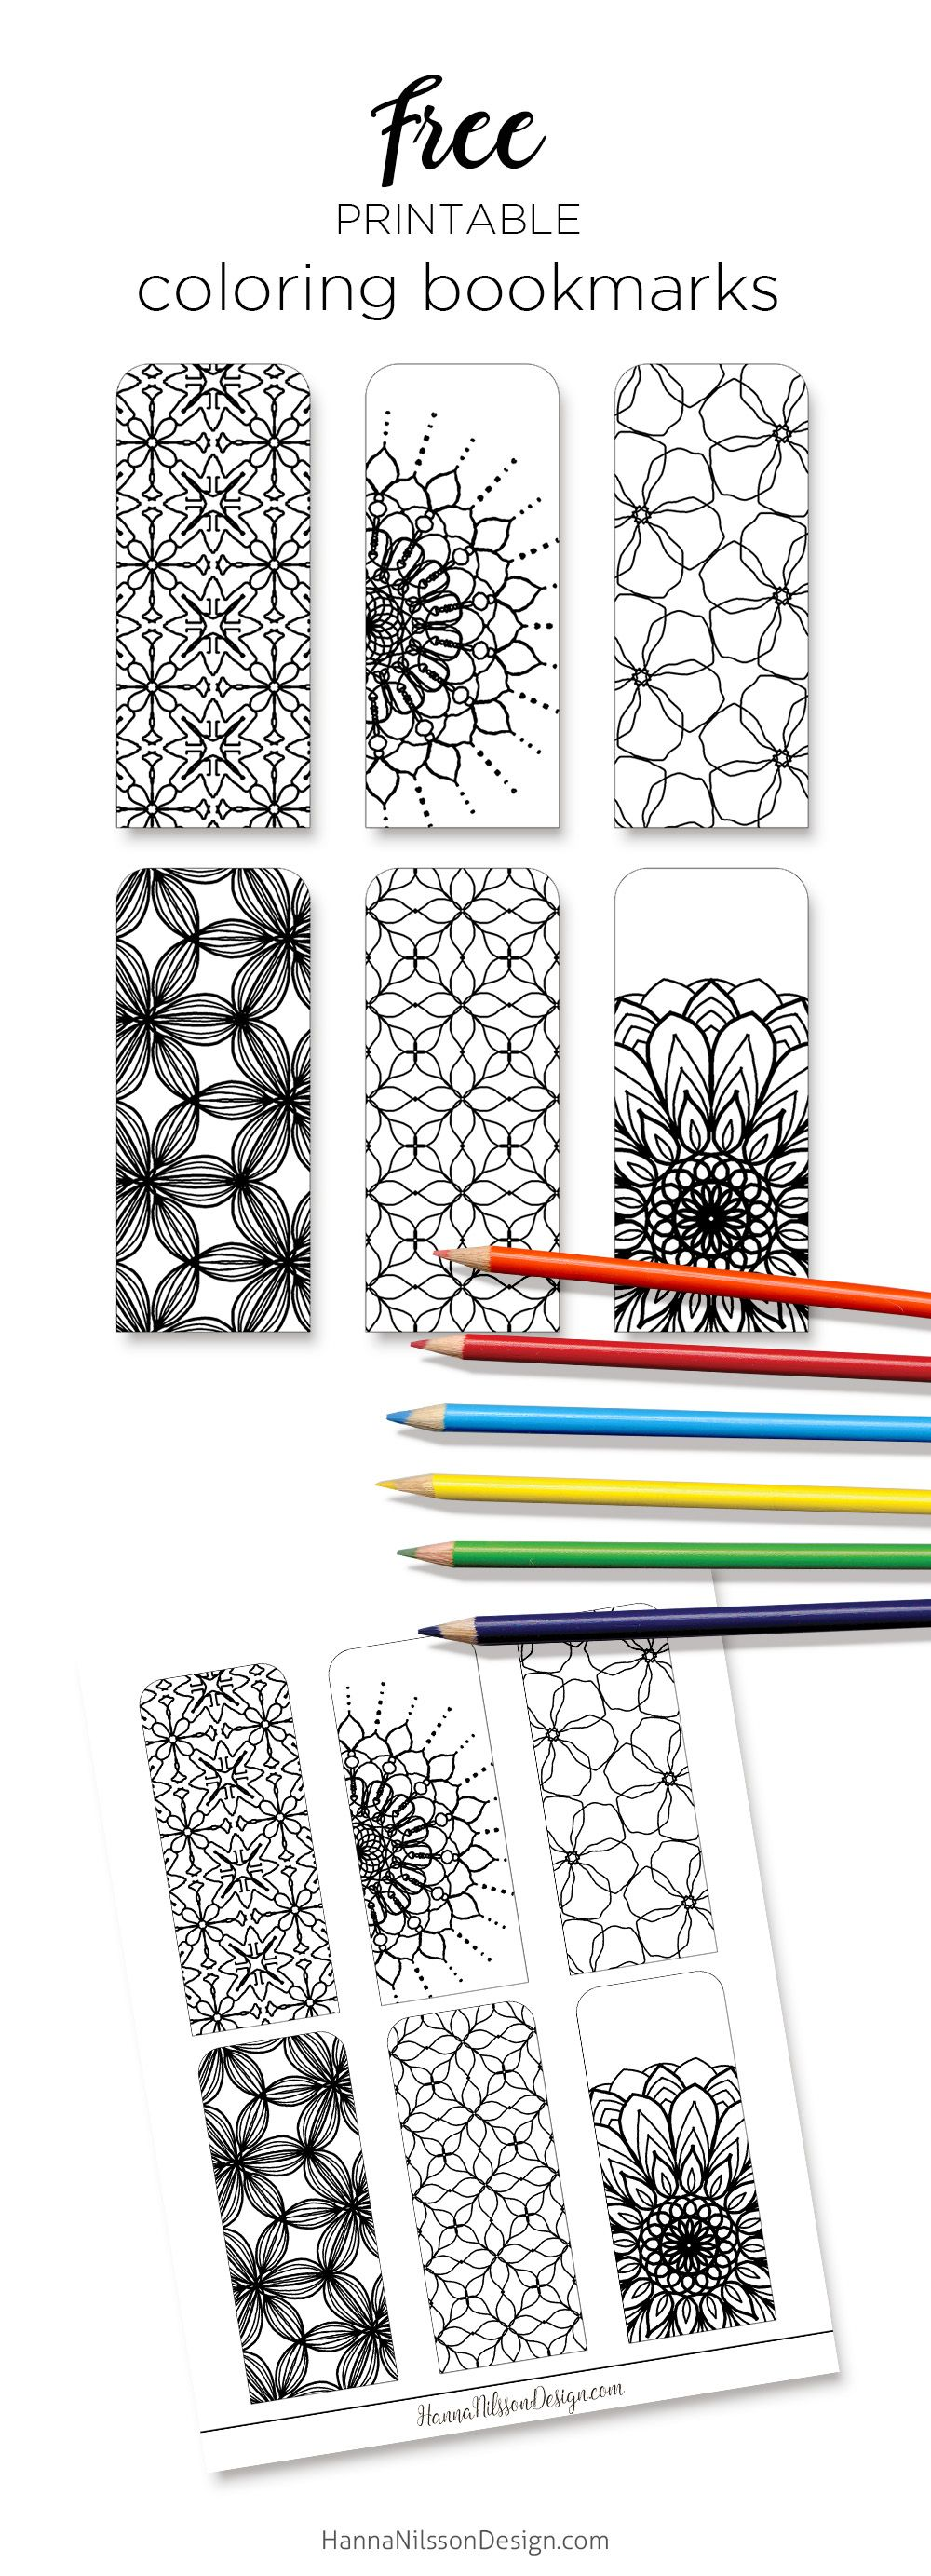 Coloring bookmarks print color